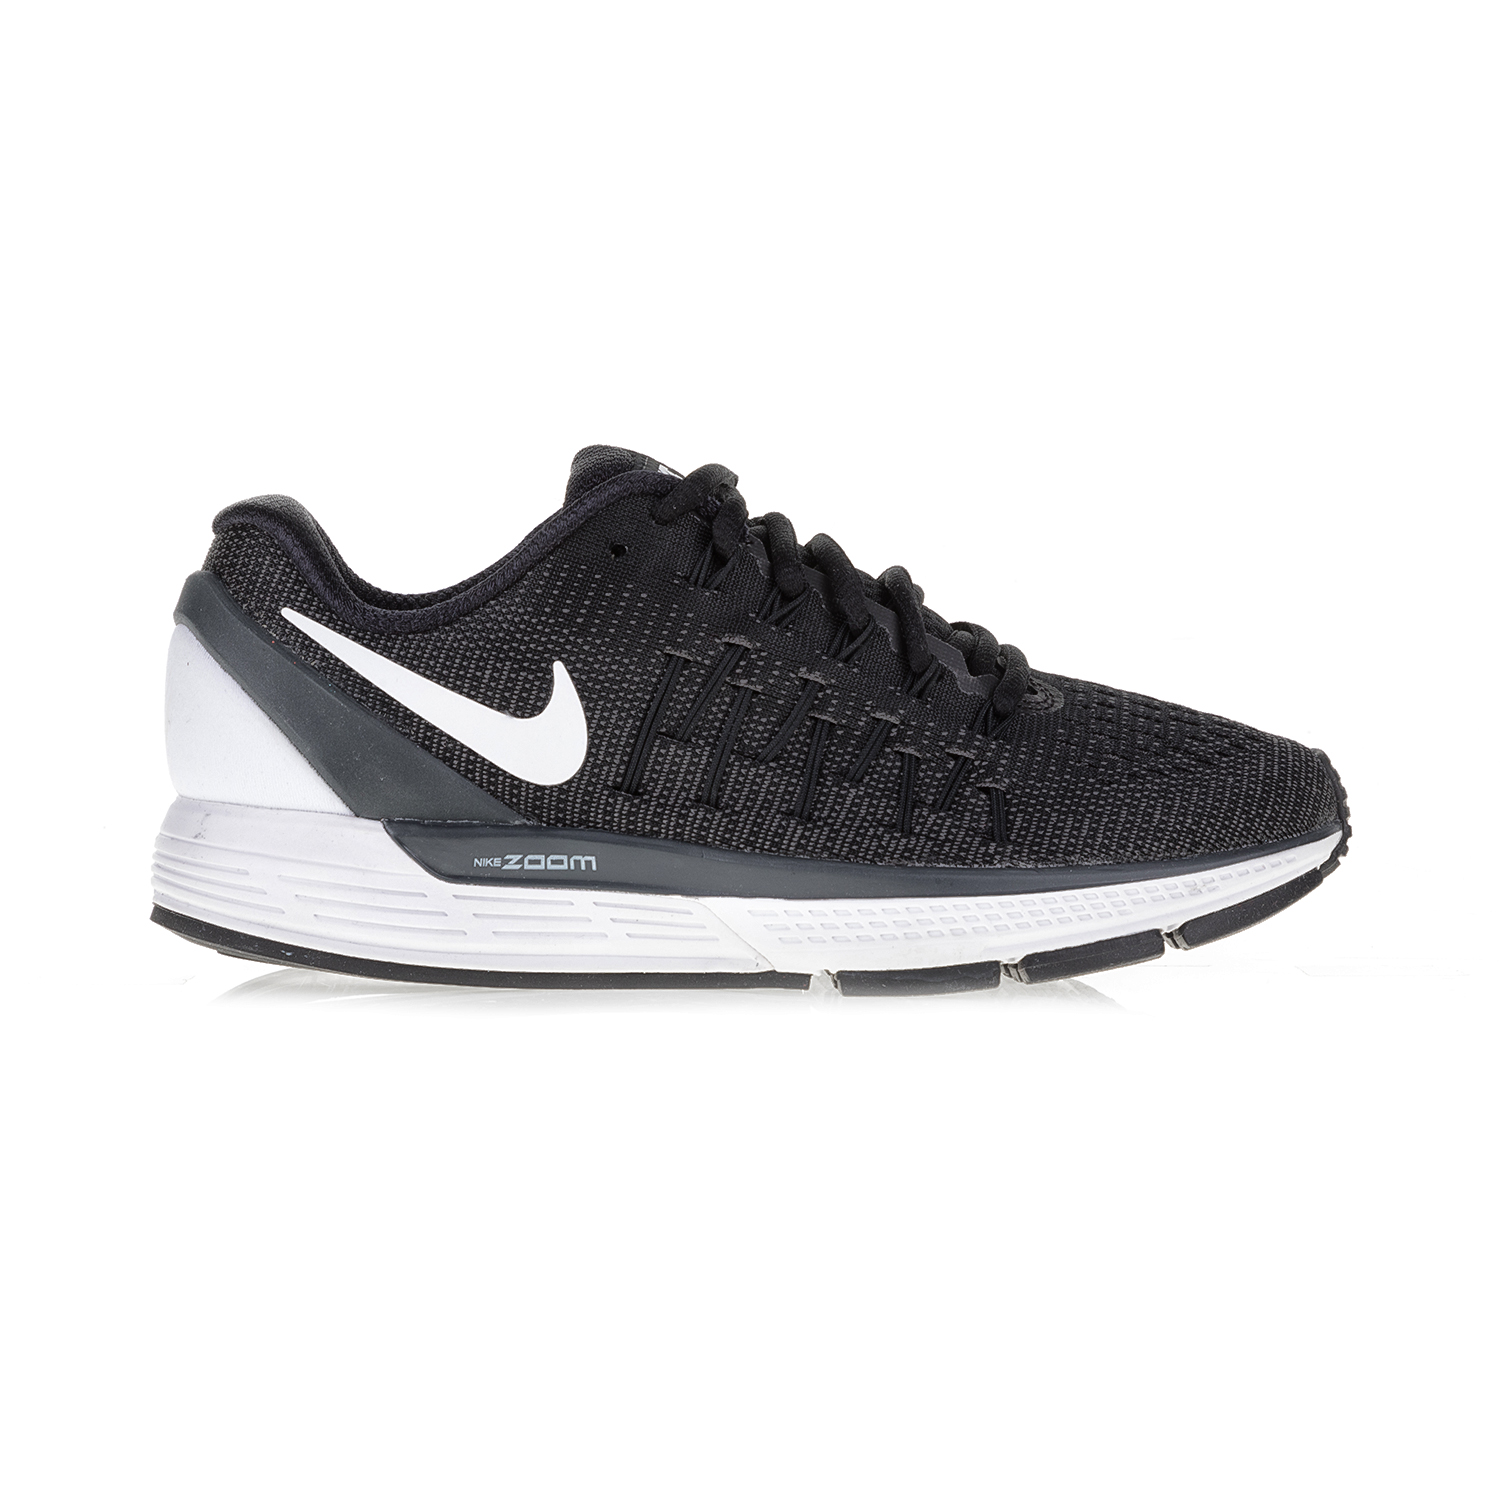 6af34d4d1b8 -31% Factory Outlet NIKE – Γυναικεία αθλητικά παπούτσια NIKE AIR ZOOM  ODYSSEY 2 μαύρα